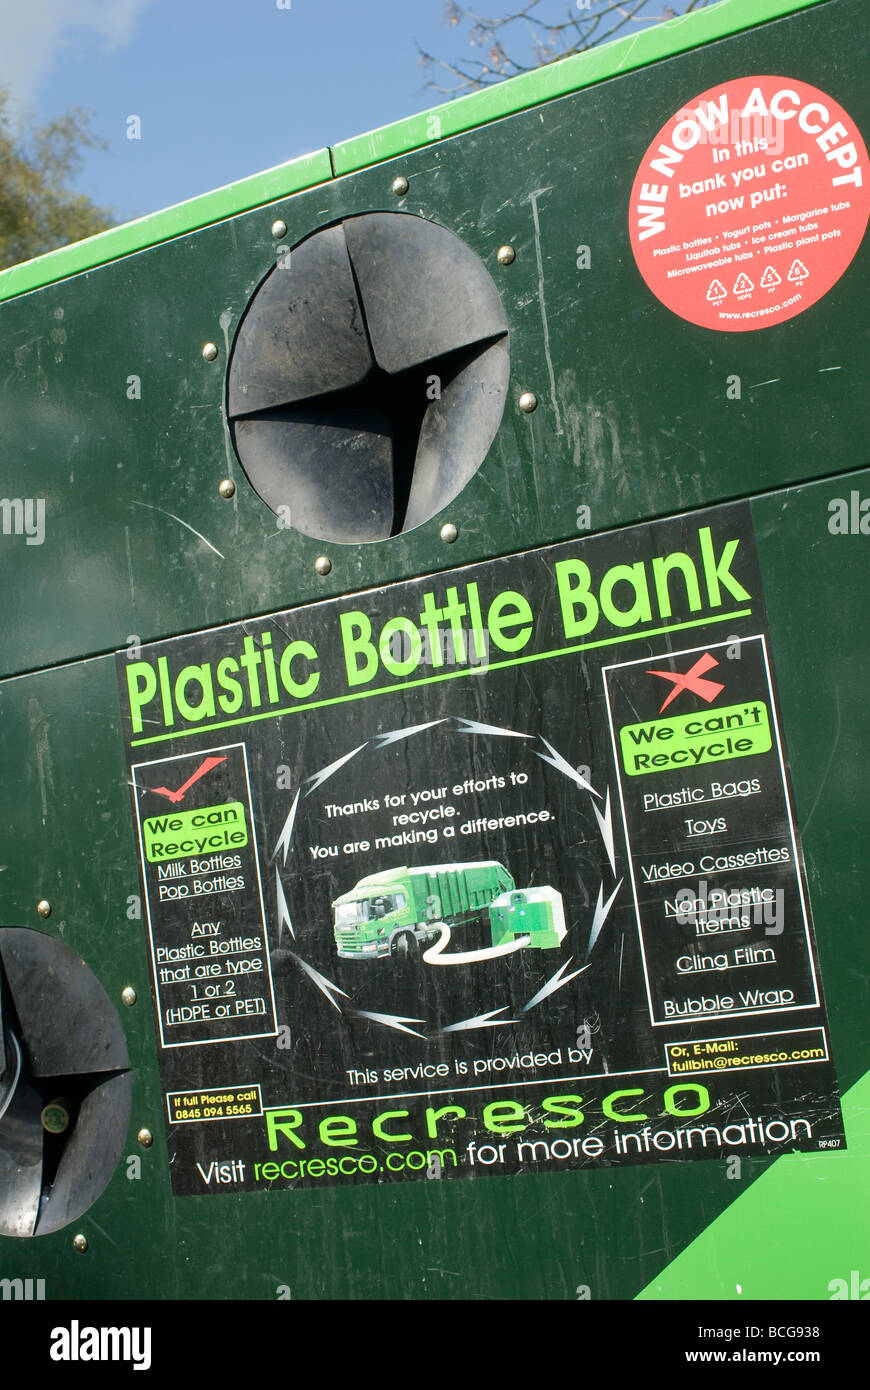 Plastic bottle bank recycling bin in England - Stock Image